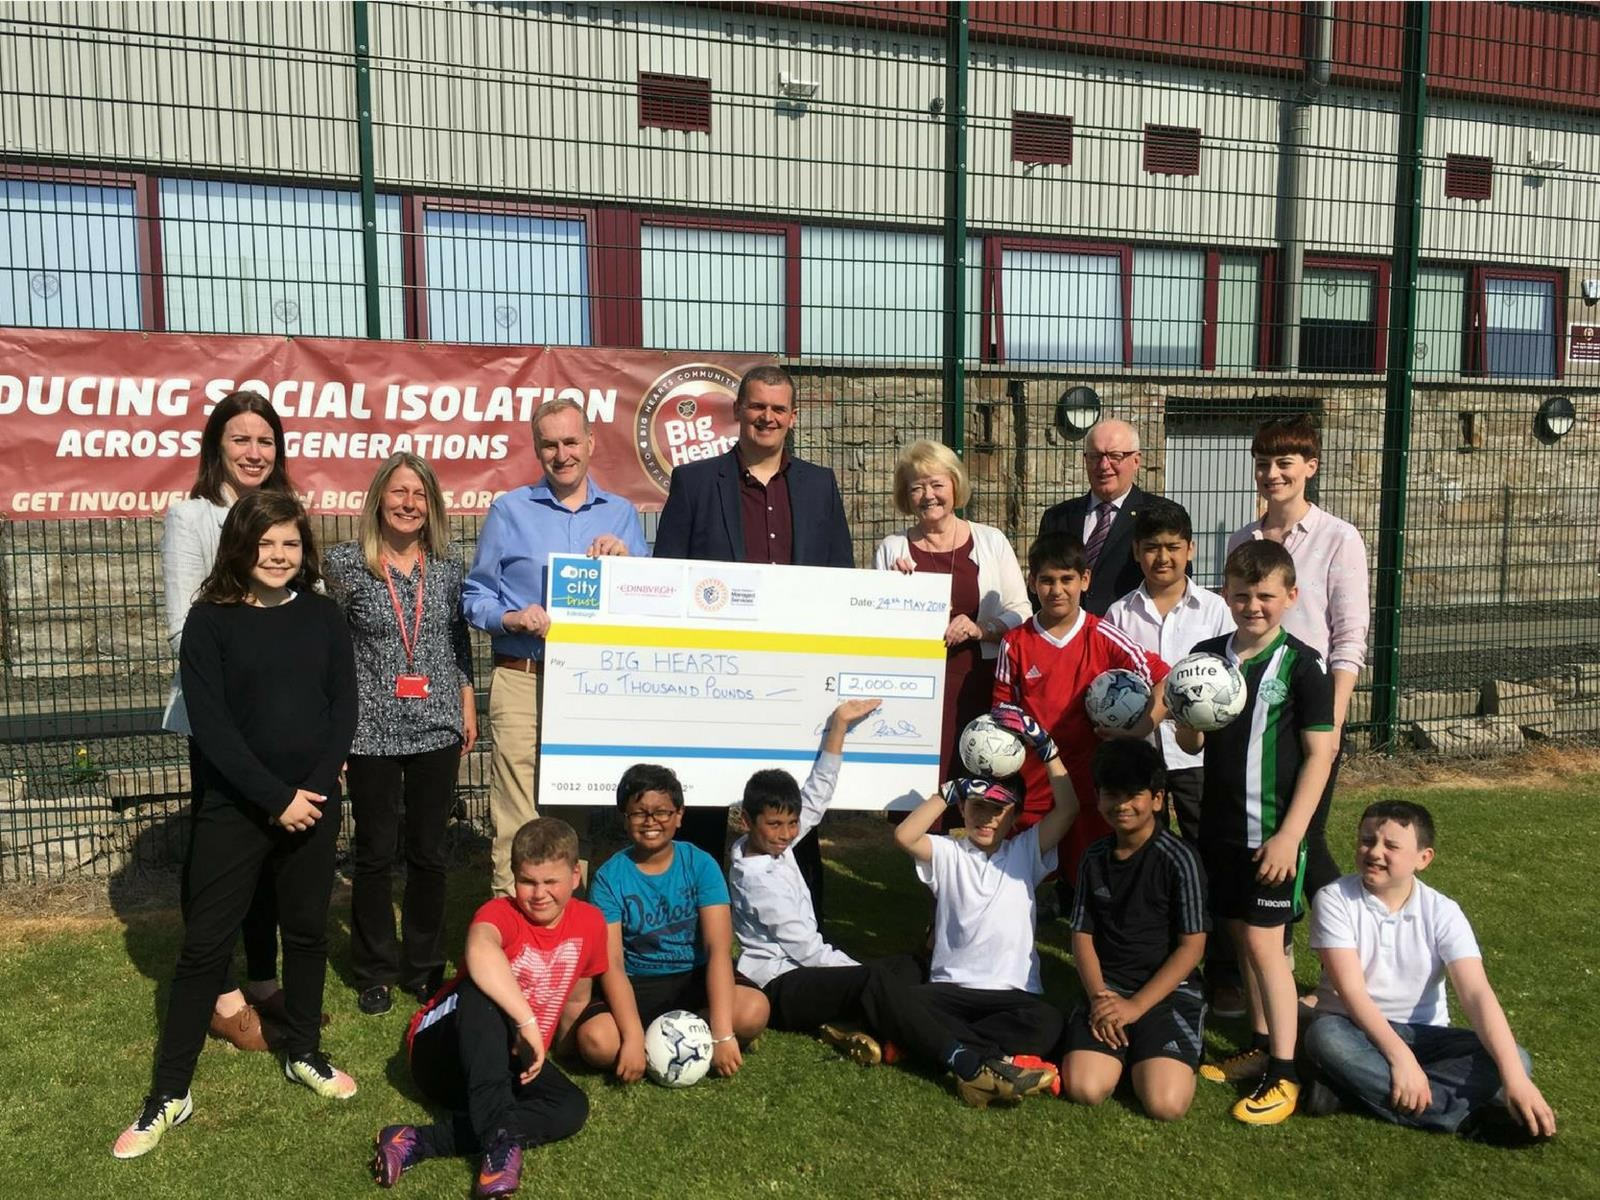 » Our T.E.A.M Project receives backing from the Lord Provost!